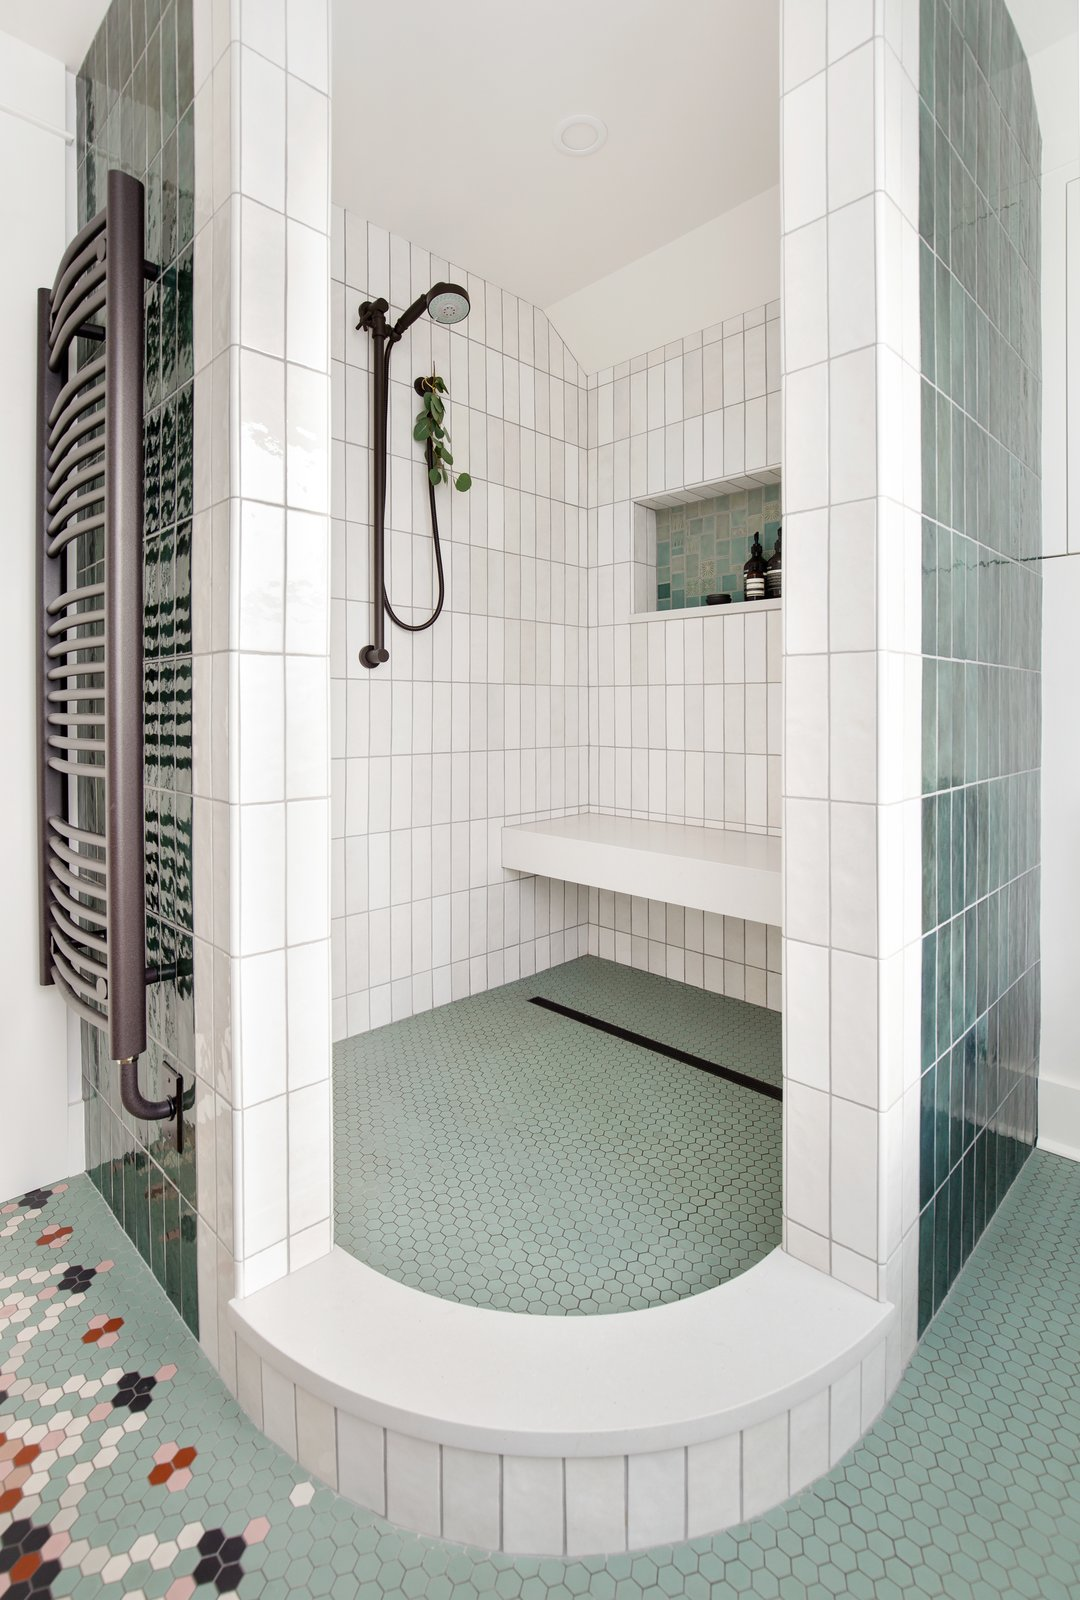 Dyer Studios North Tabor Renovation master bathroom shower penny tiles clayhaus modern tile